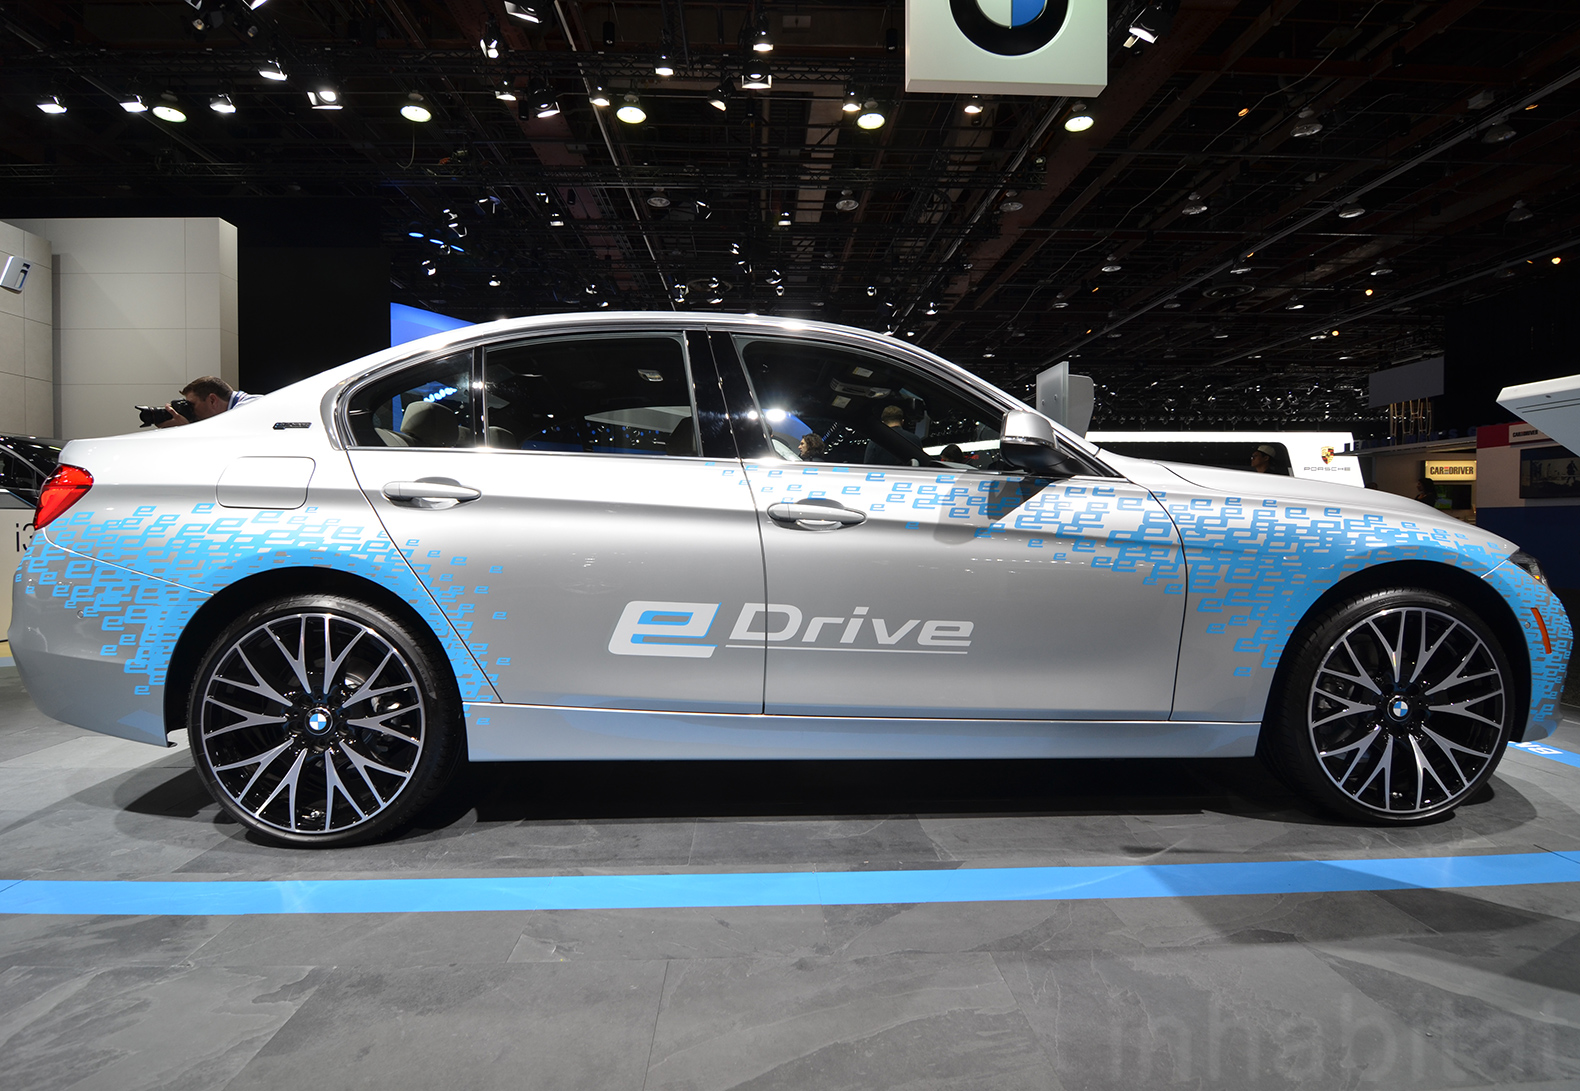 2016 Bmw 330e Plug In Hybrid Can Travel Up To 22 Miles Ev Mode